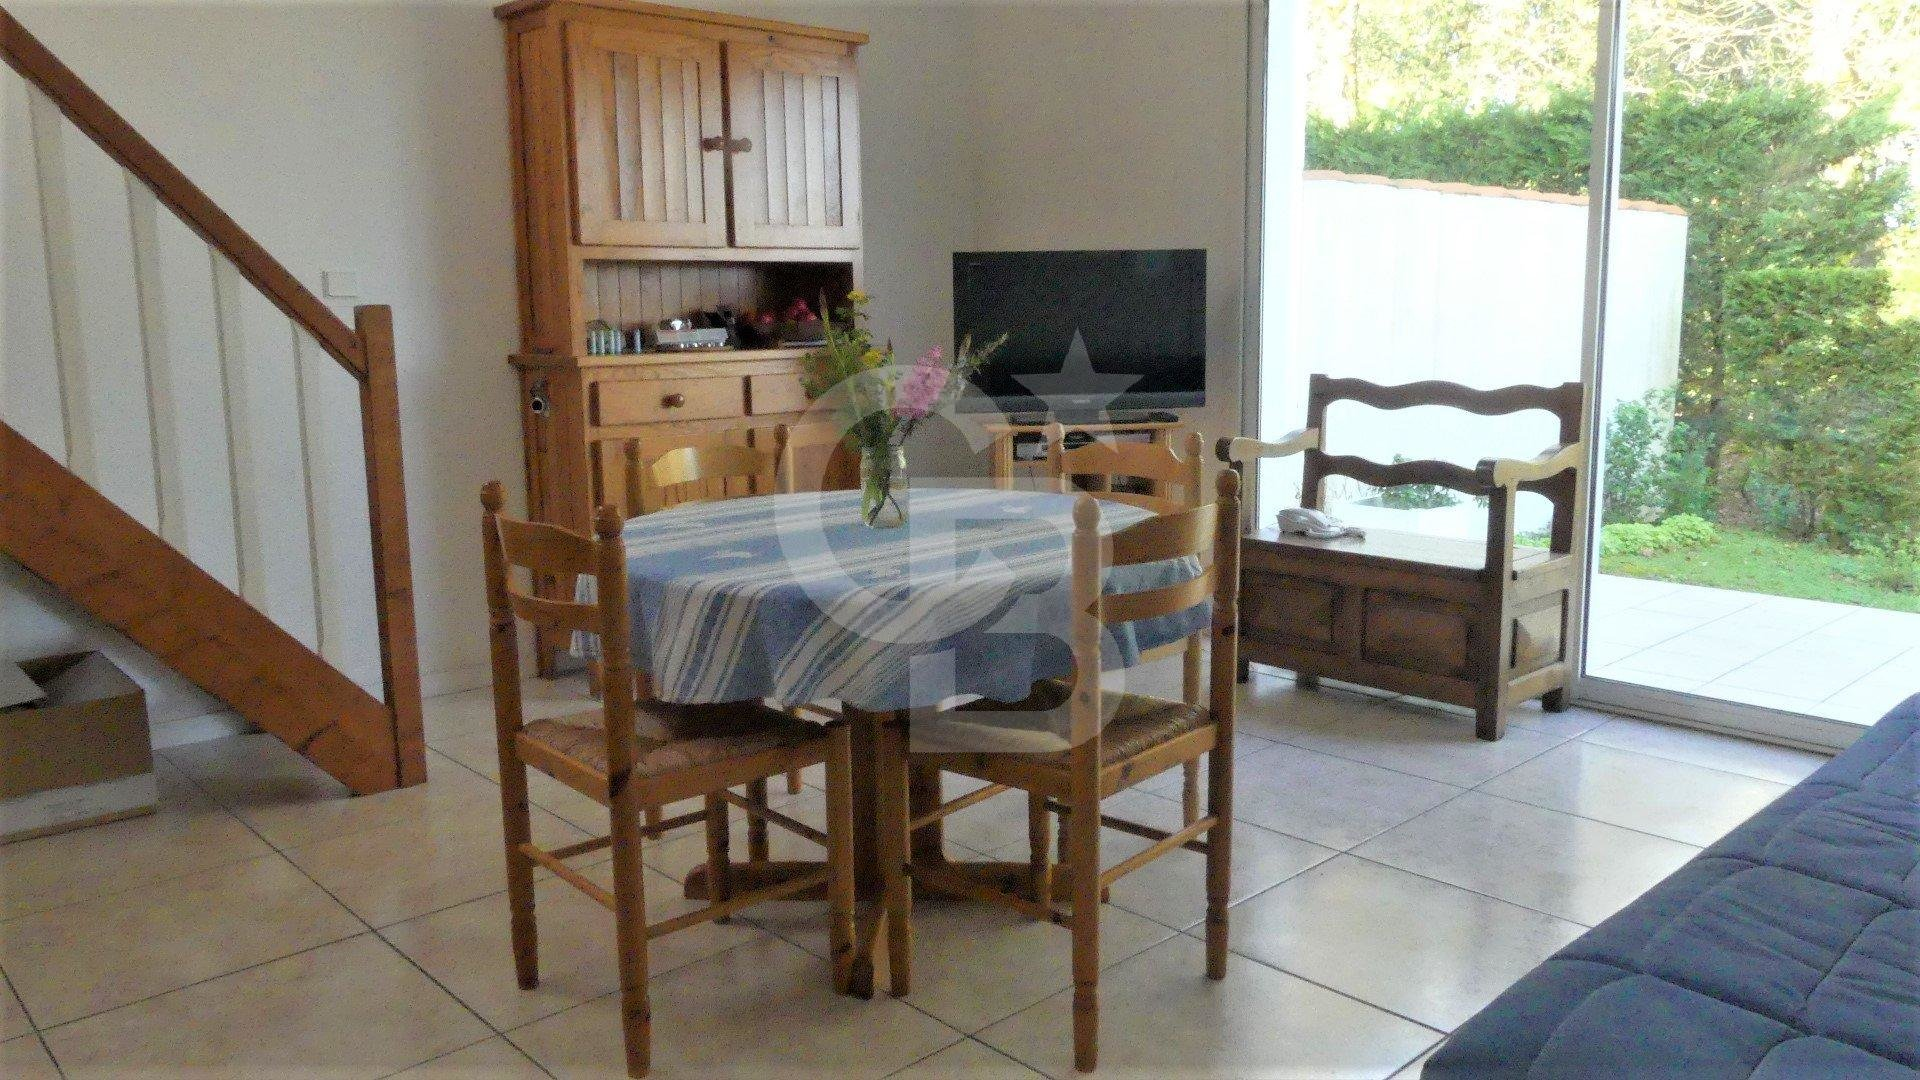 Holiday Home for Sale in Vaux sur Mer